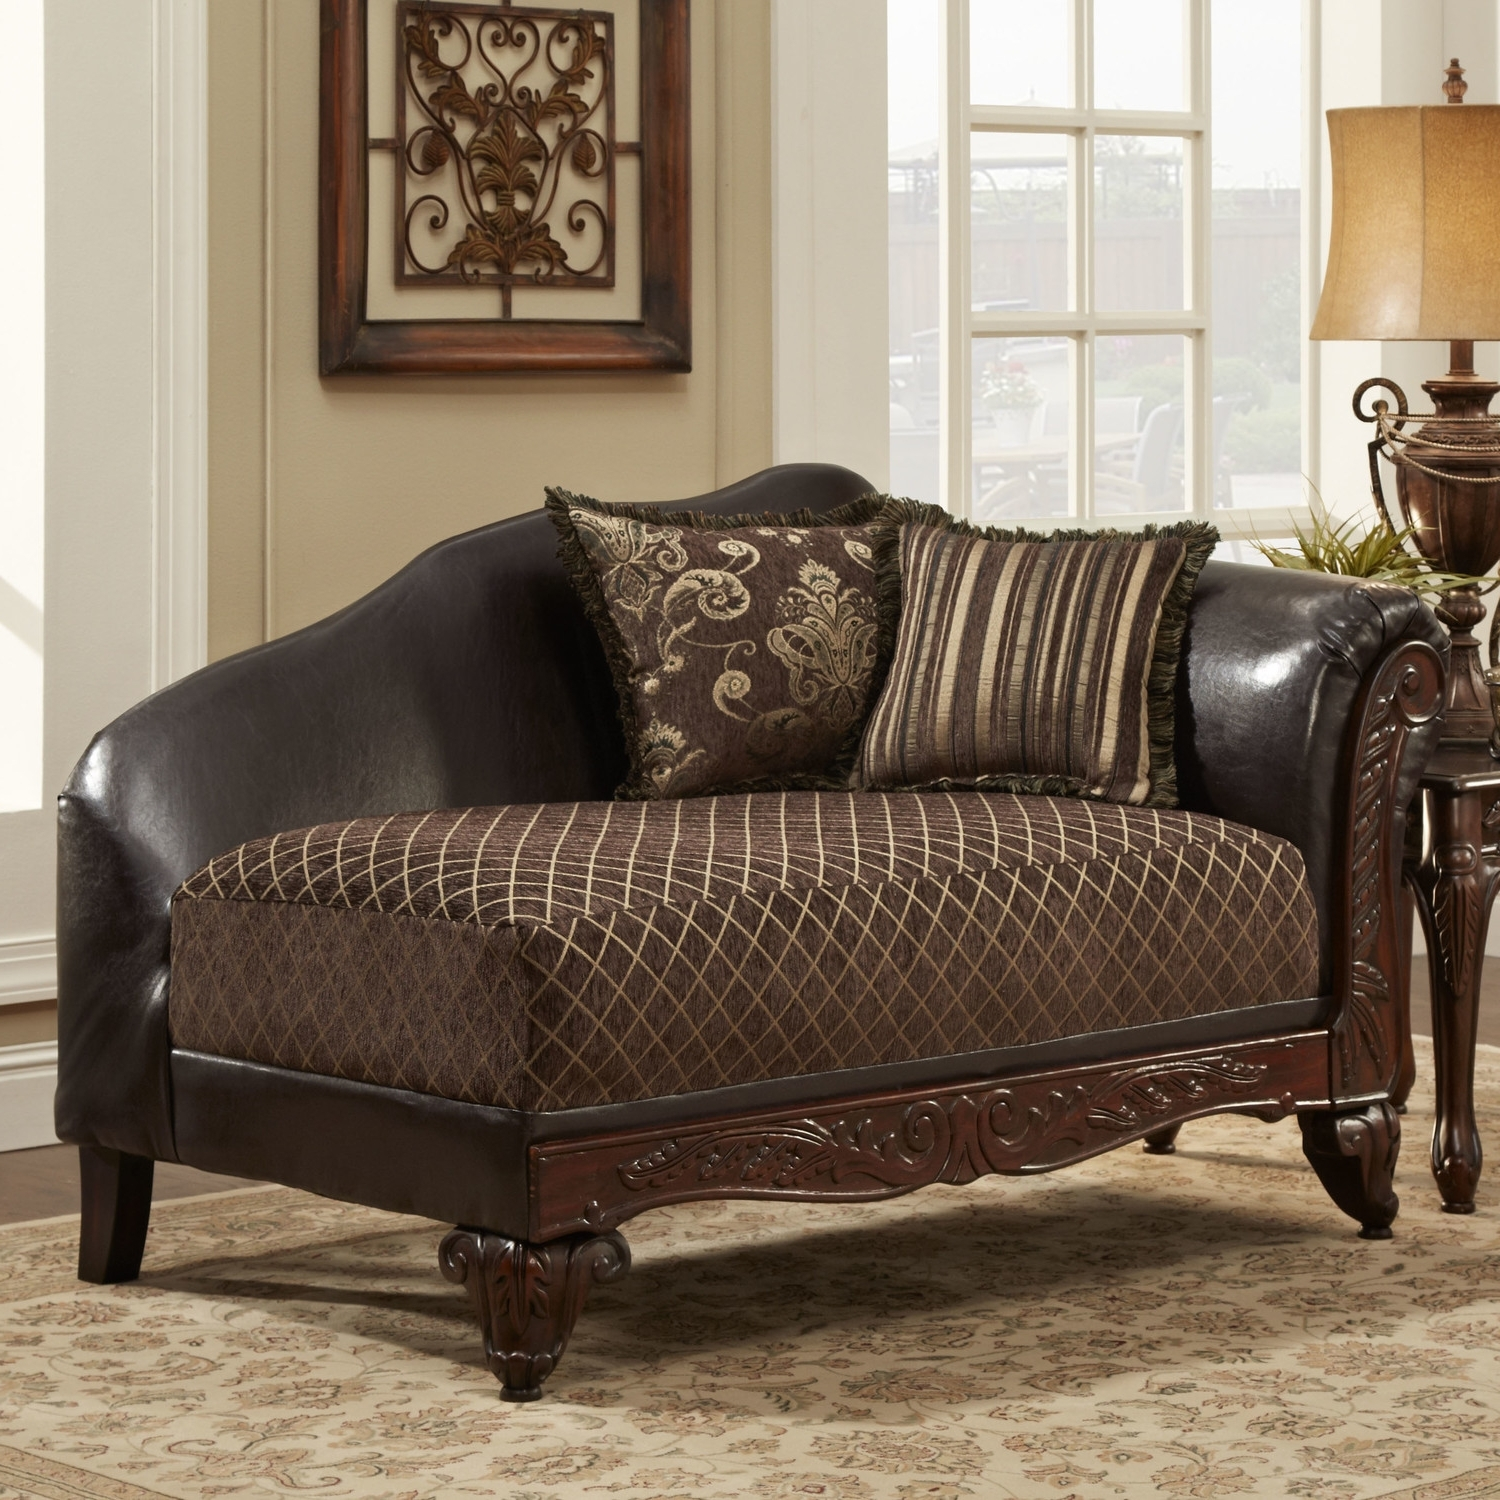 Latest Wonderful Brown Leather Chaise Lounge With Traditional Chaise Within Brown Leather Chaises (View 10 of 15)